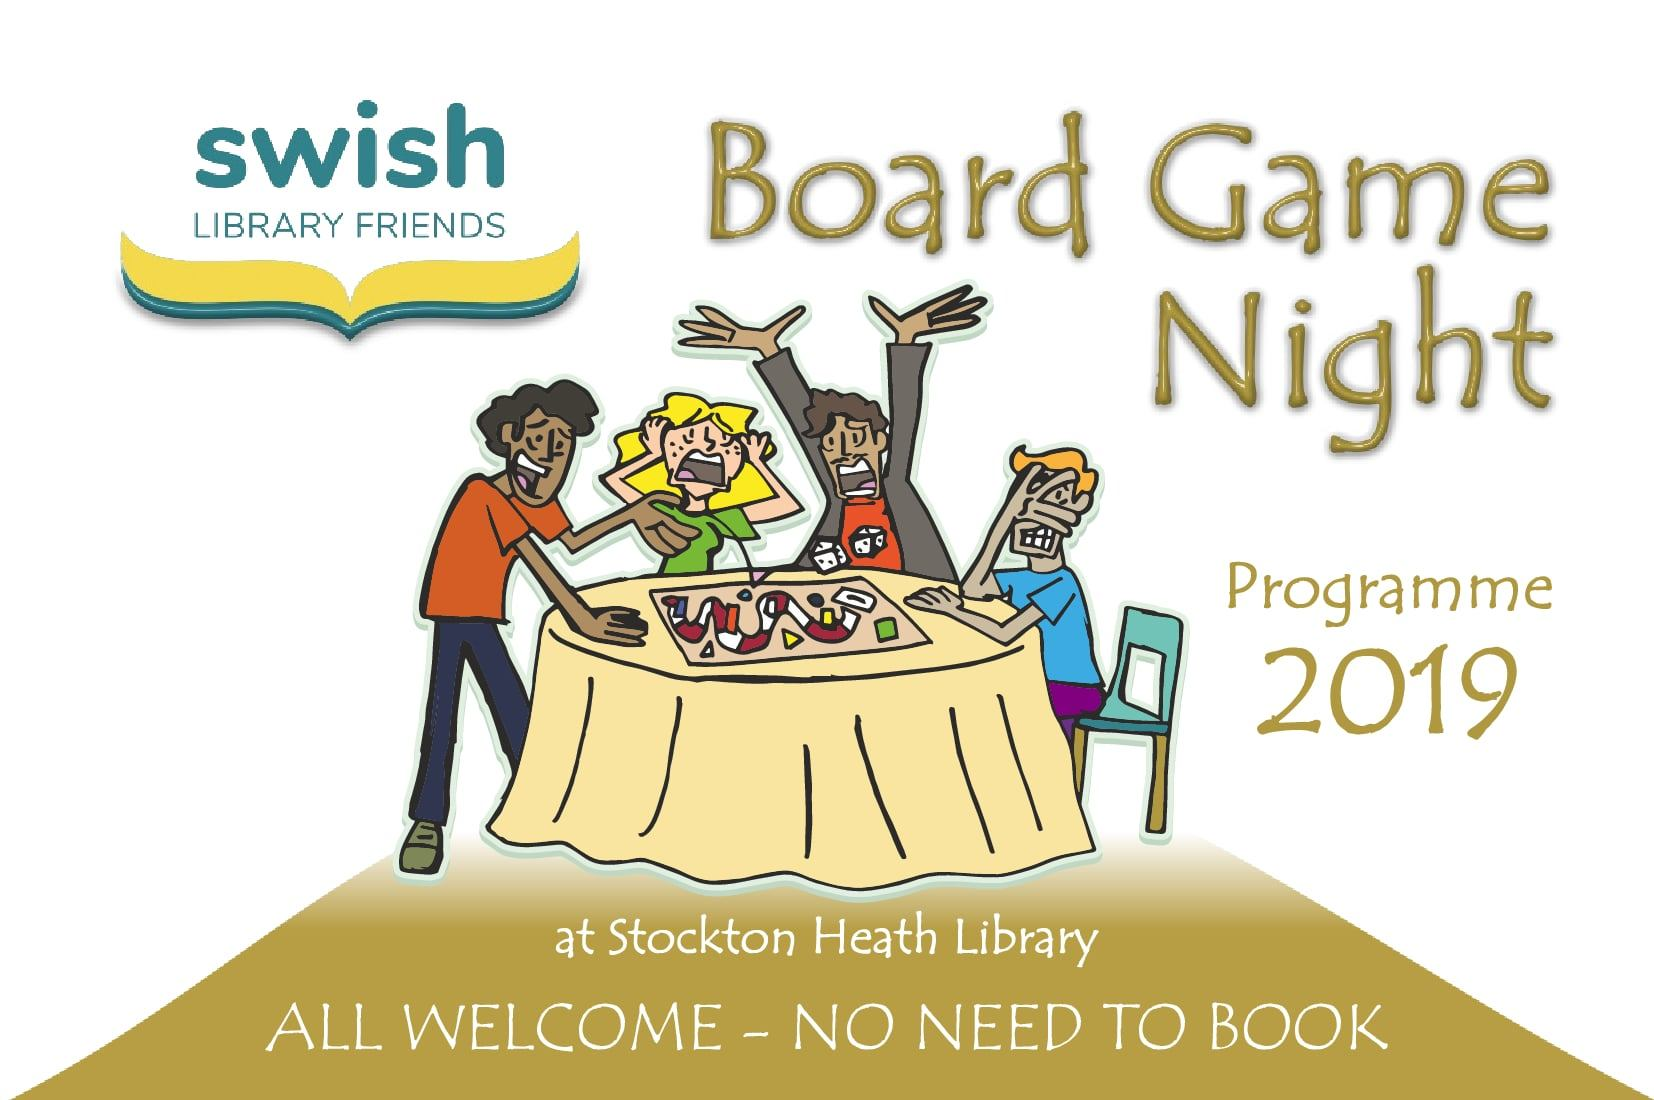 Board Games Nights in 2019